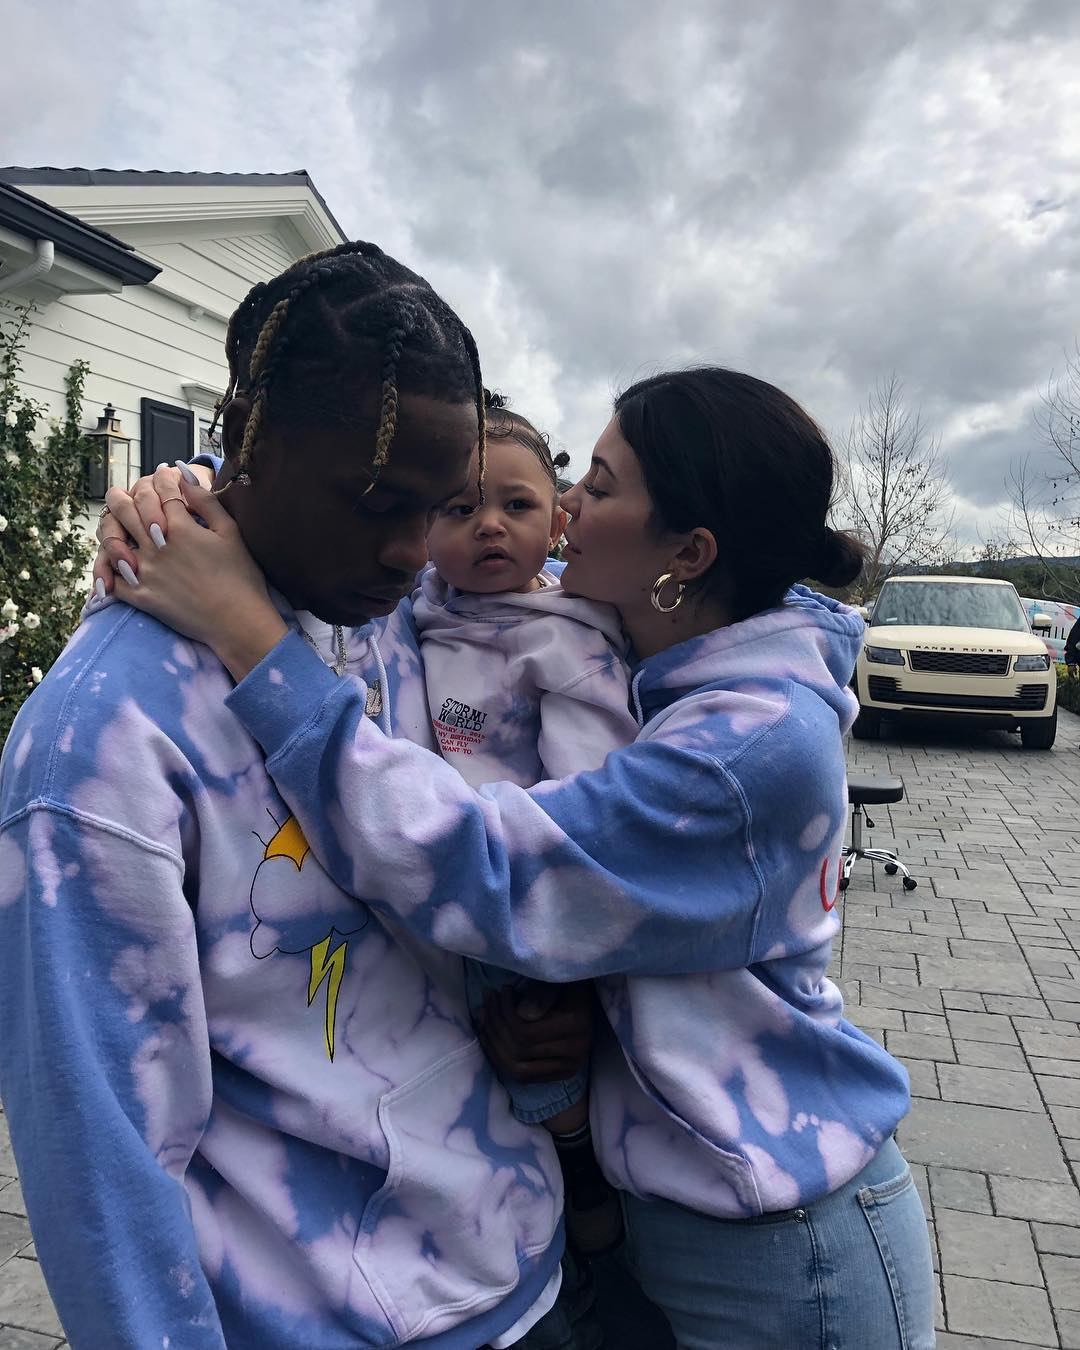 Kylie Jenner Gifted Travis Scott A Lamborghini For Birthday And Called Him 'Hubby' In Latest Post